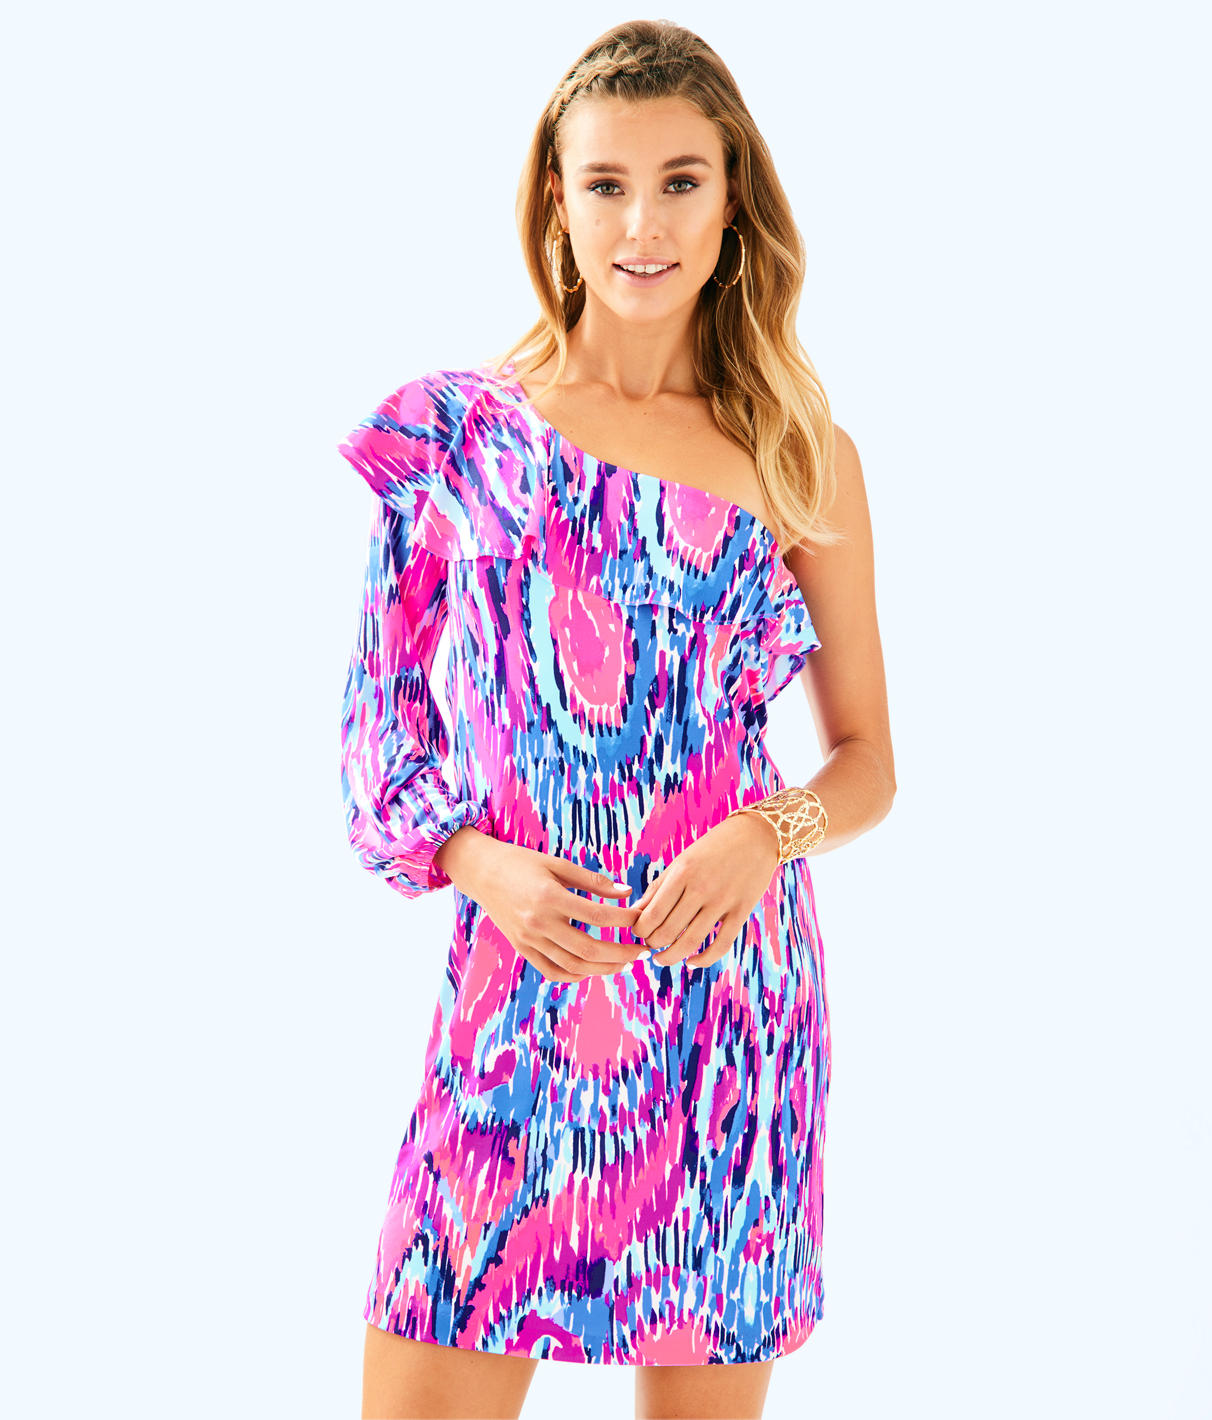 Lilly Pulitzer Lilly Pulitzer Womens Amante Silk Jersey Dress